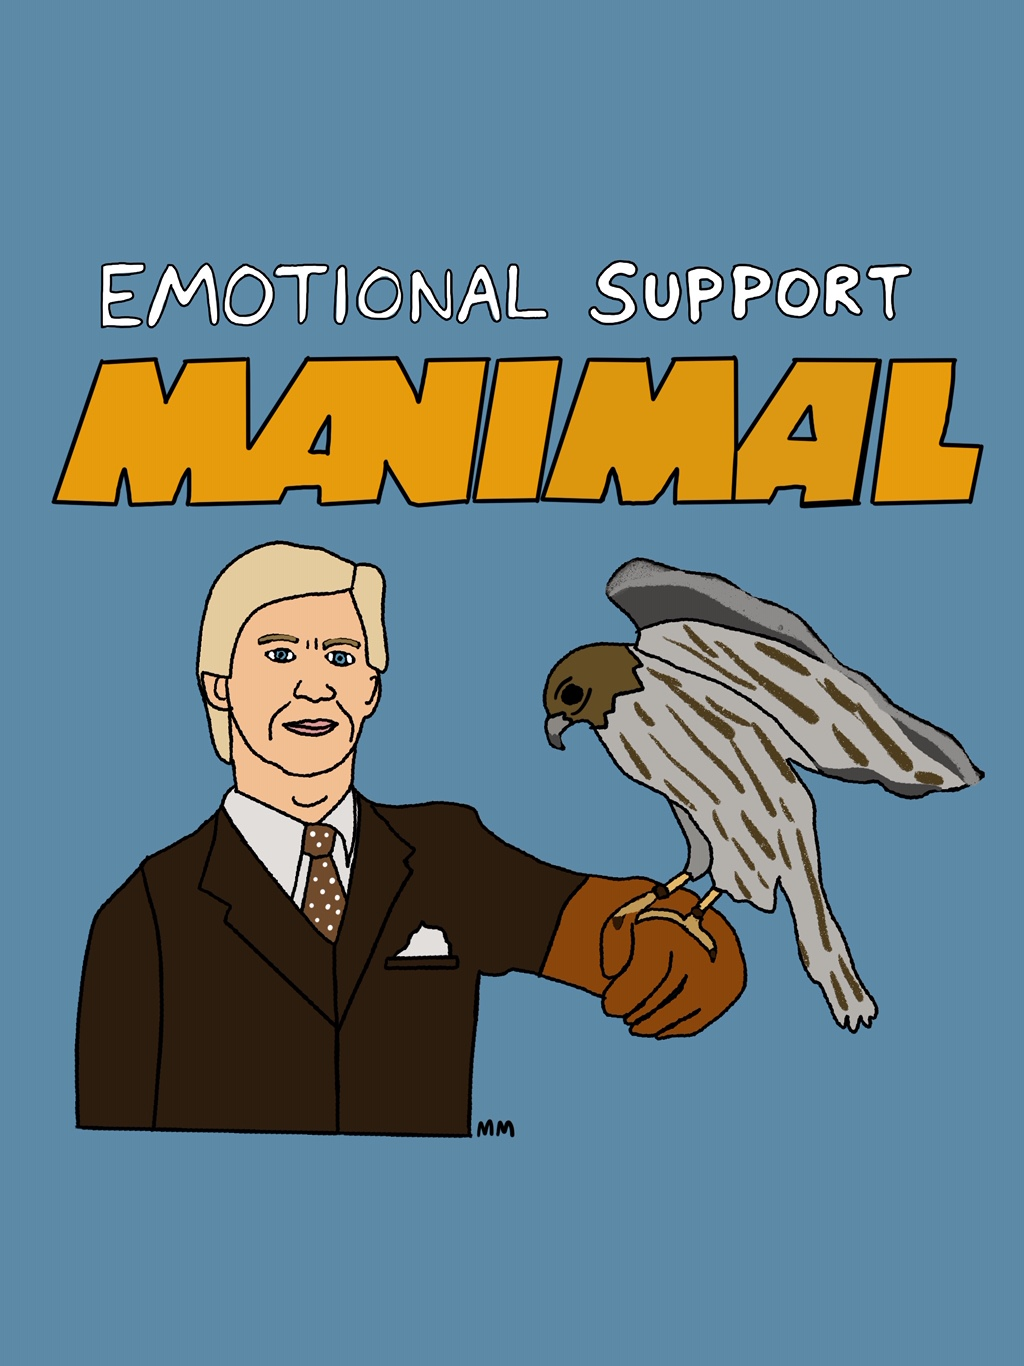 Emotional Support Manimal